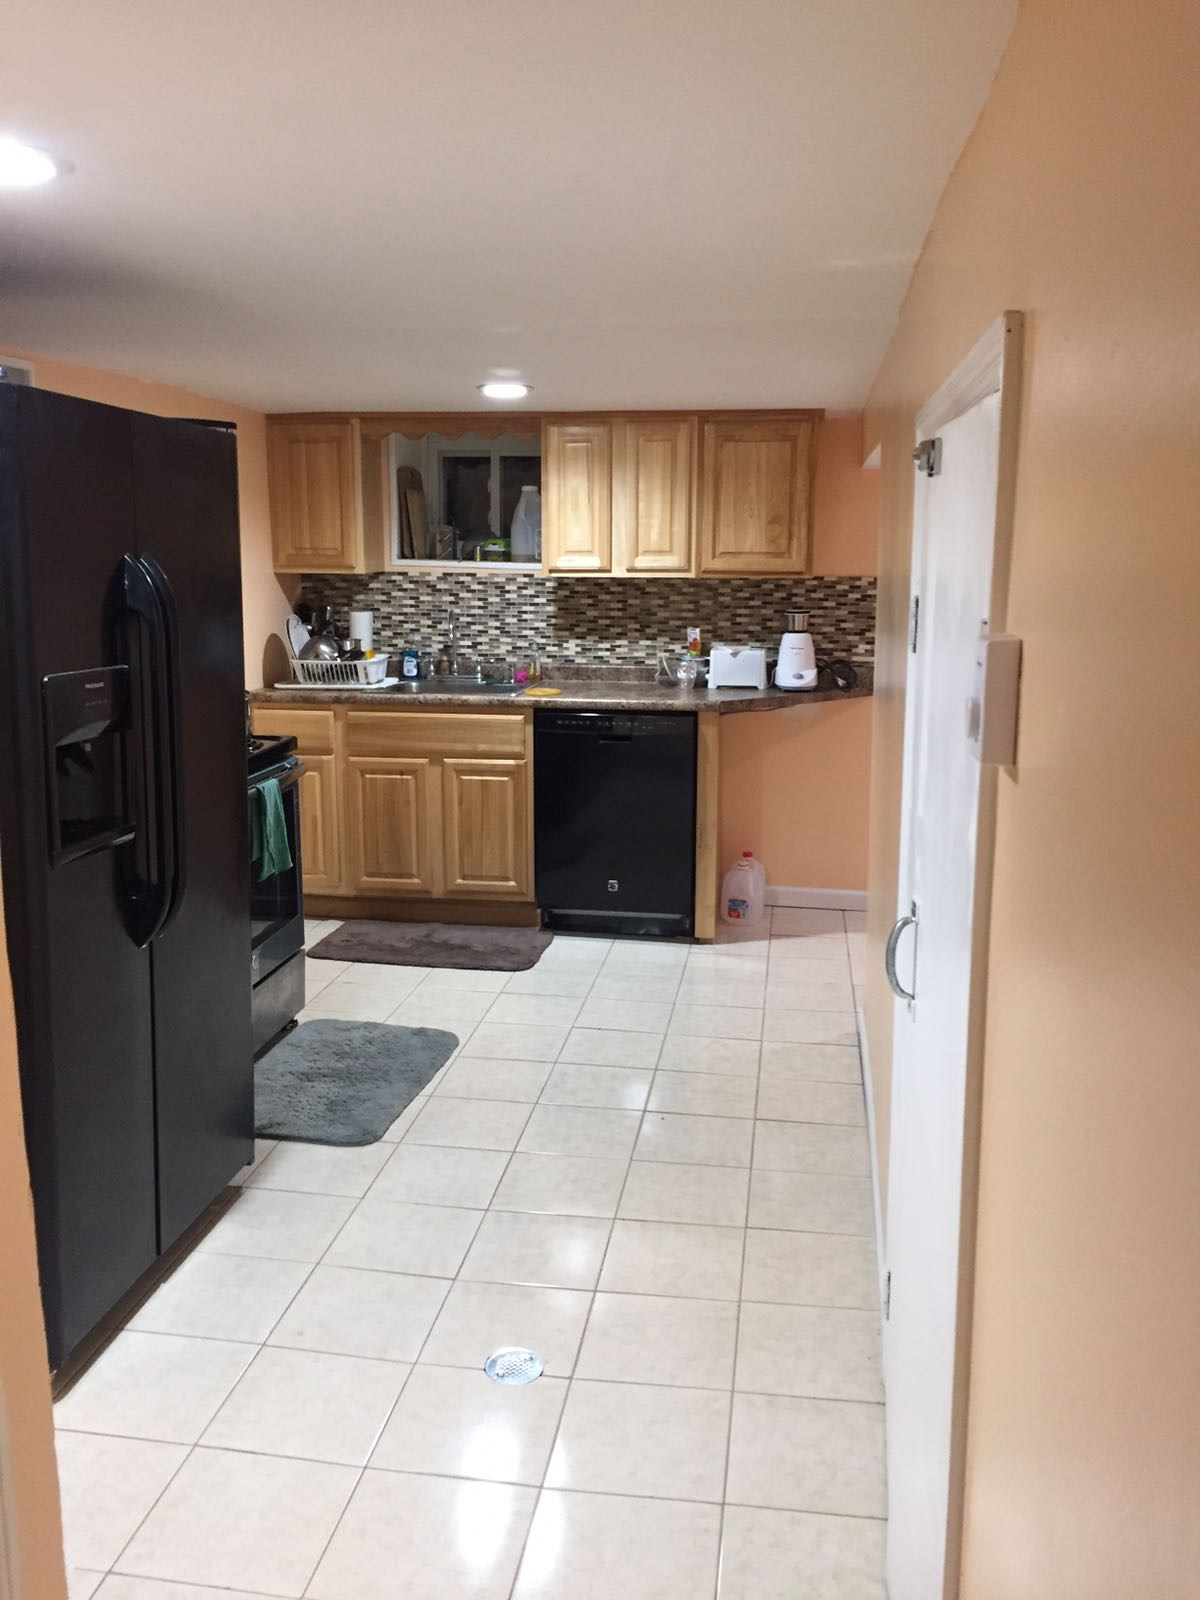 Brand New 2 Beds Room Apartment Journal Square Jersey Heights No Bro